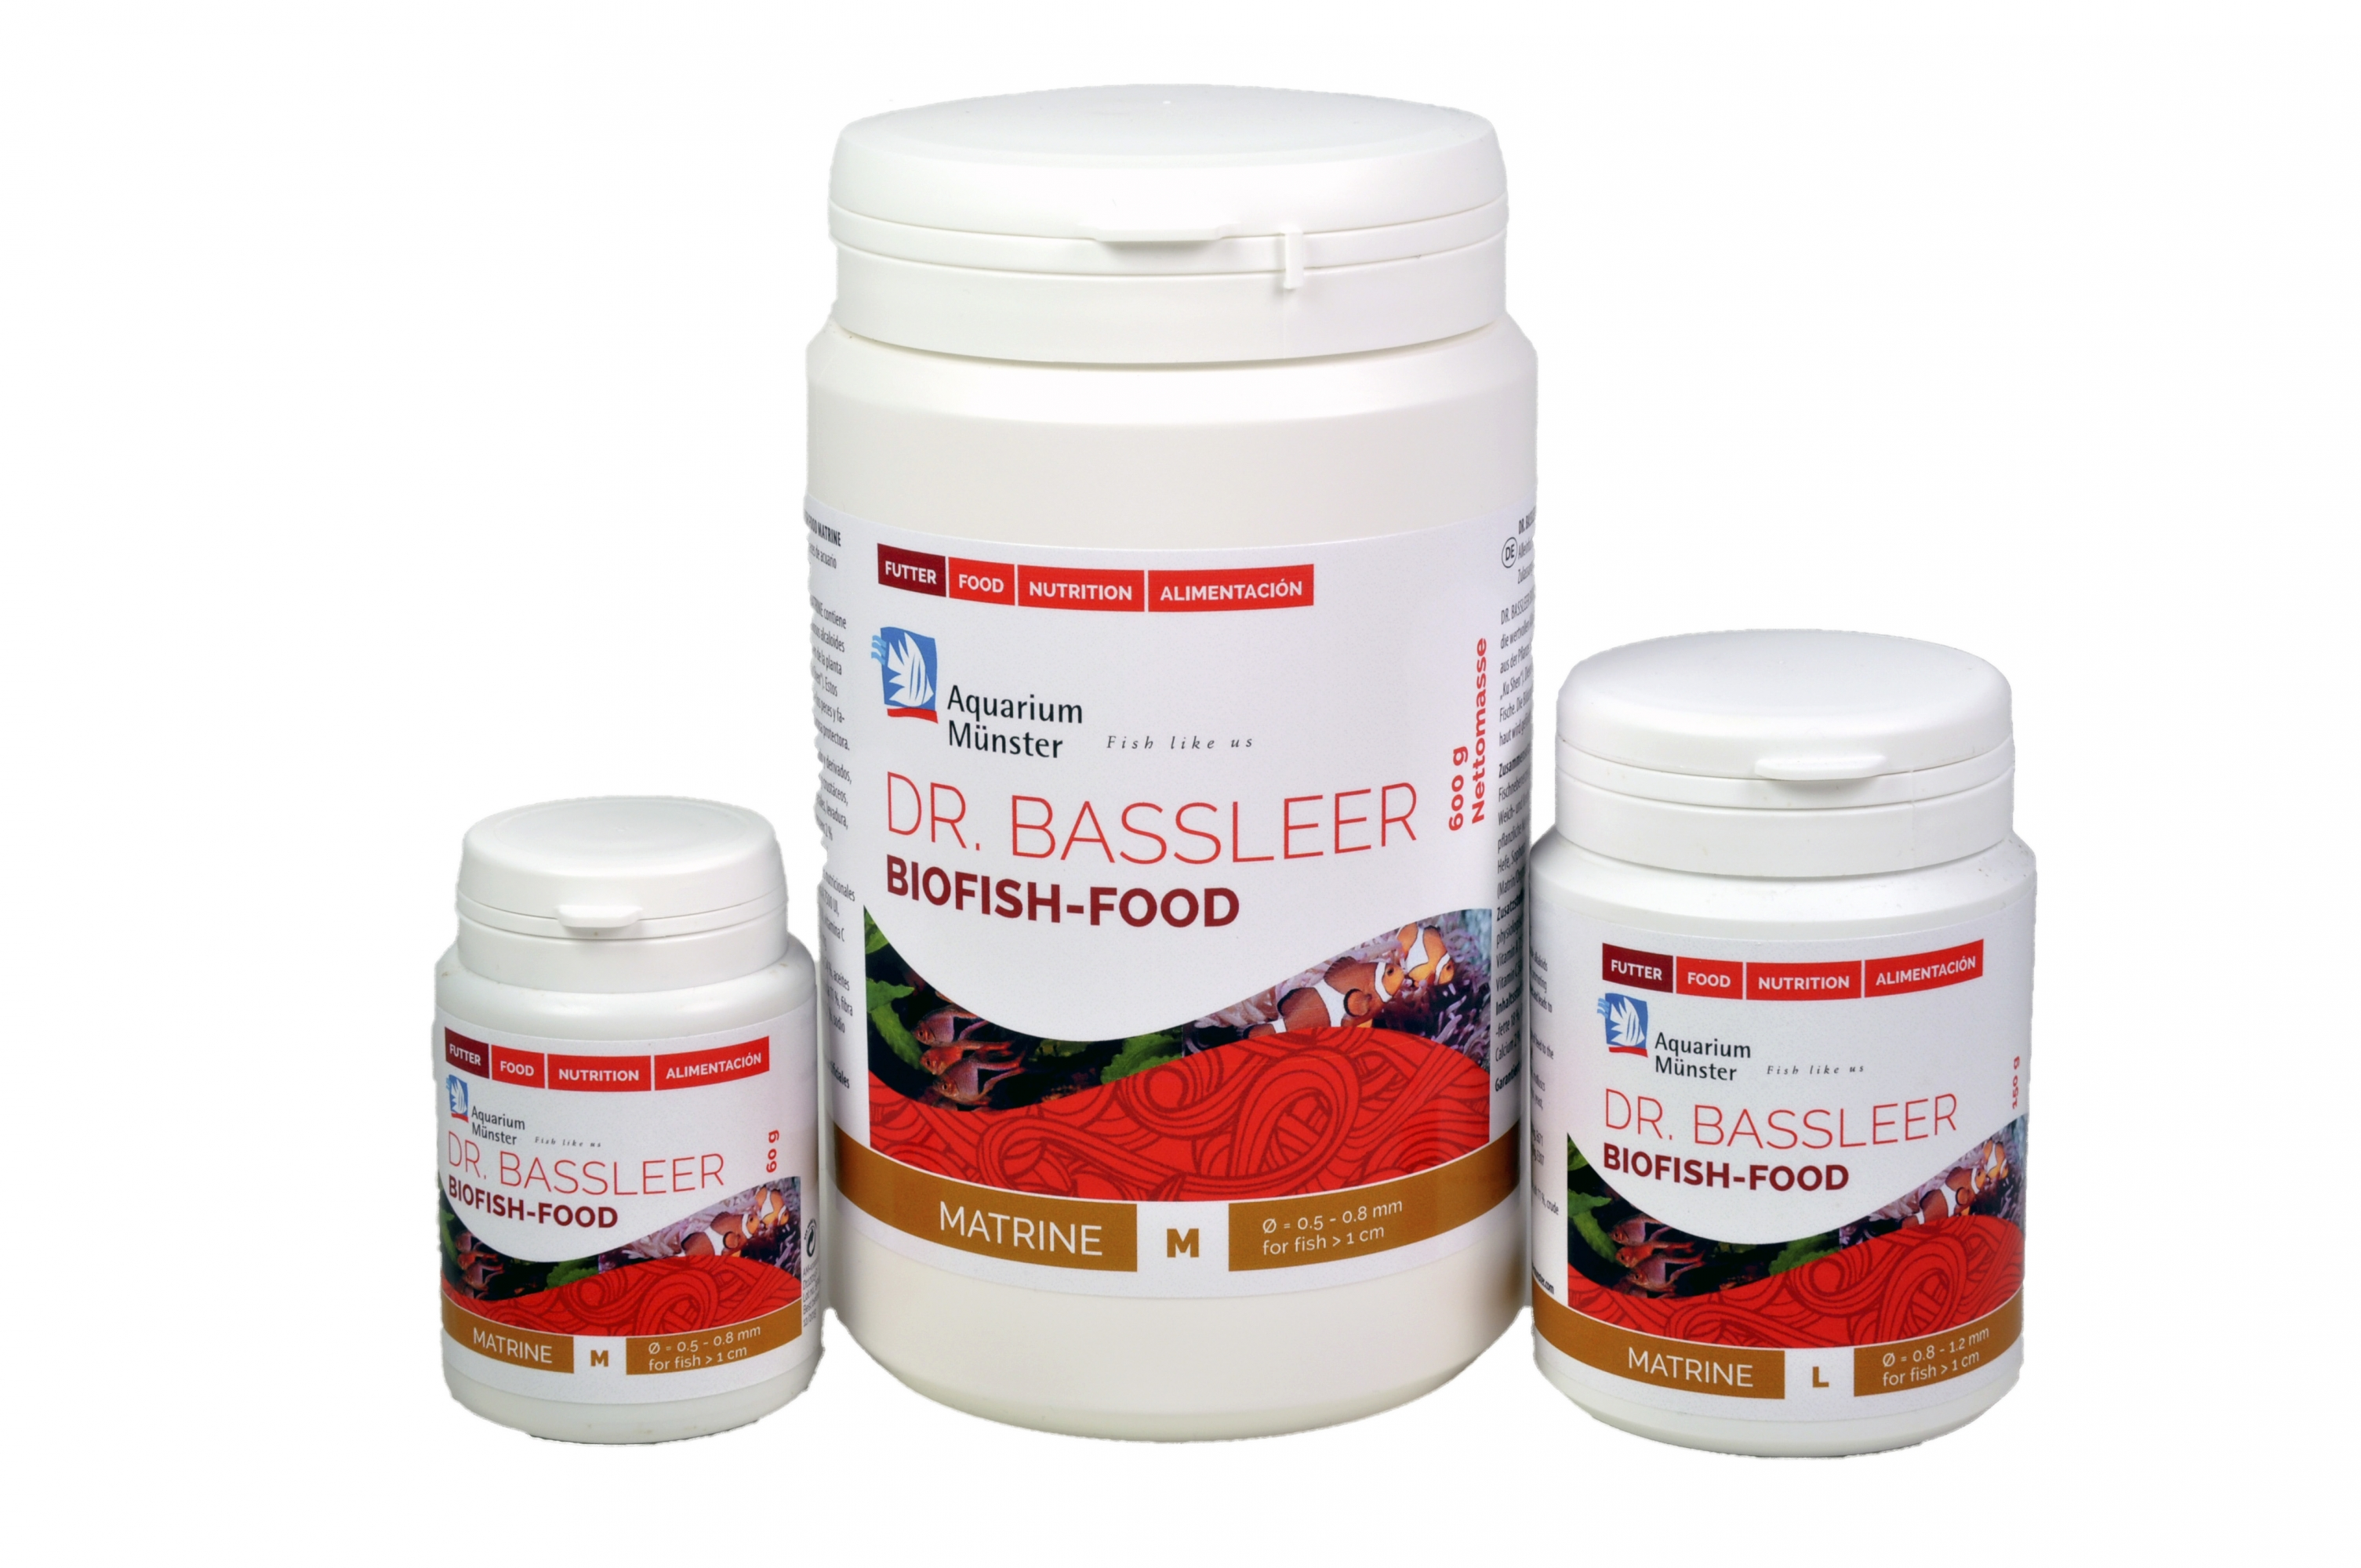 Bassleer Biofish Food Matrine Packing